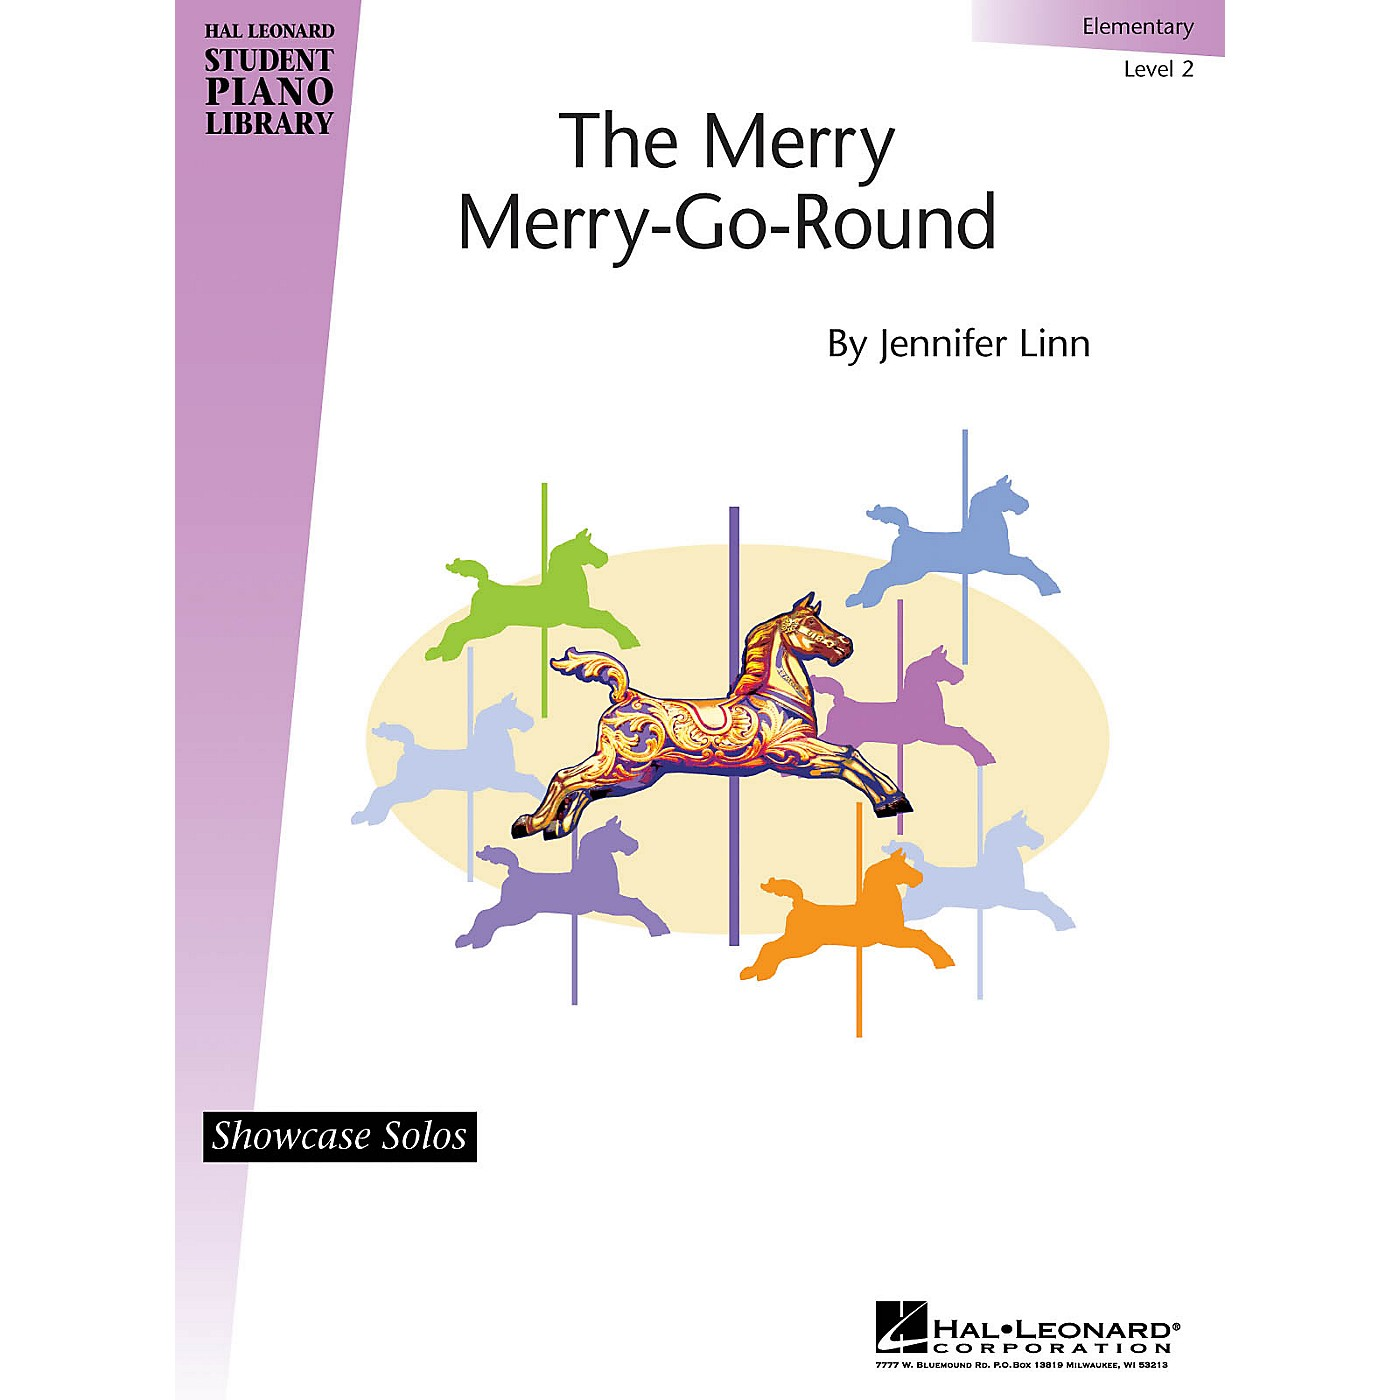 Hal Leonard The Merry Merry-Go-Round Piano Library Series by Jennifer Linn (Level Elem) thumbnail